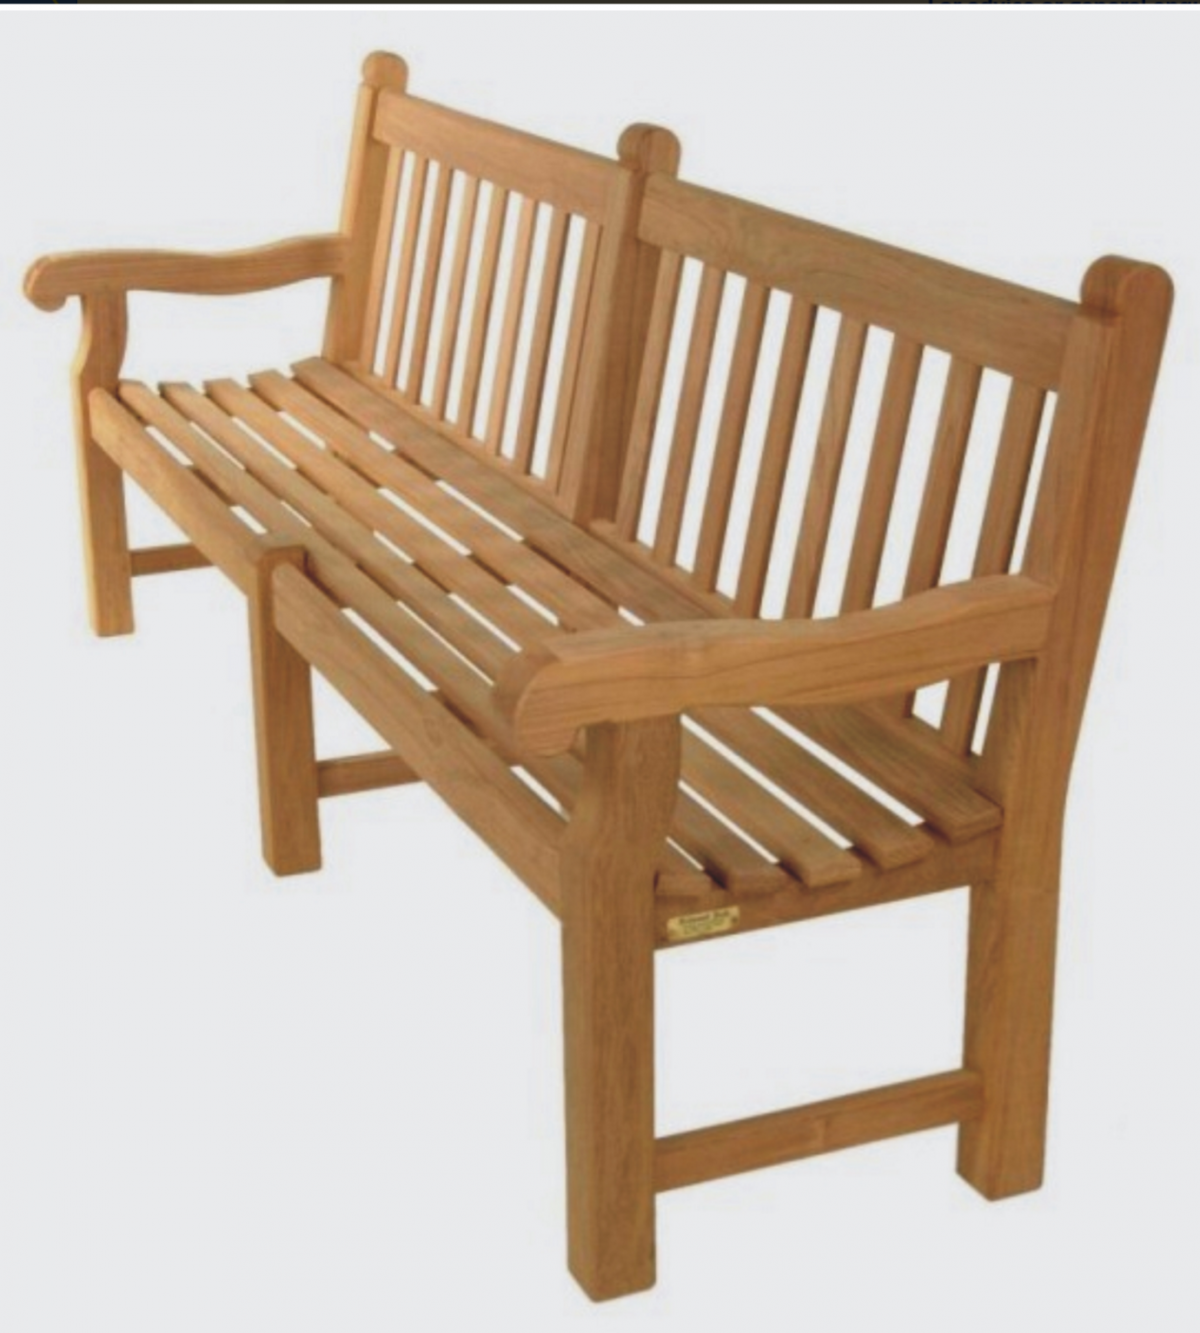 8FT Oxford bench (with centre legg)